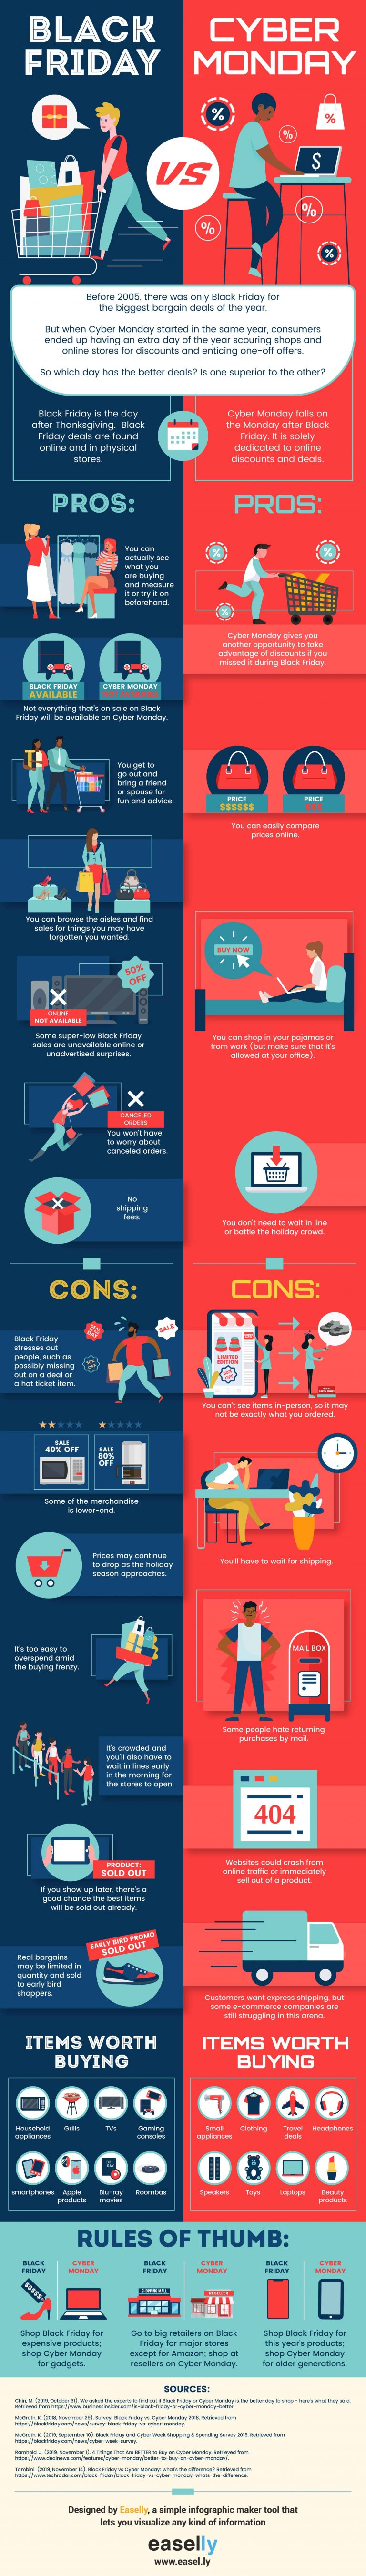 infographic comparing black friday and cyber monday deals as well as pros and cons of each day